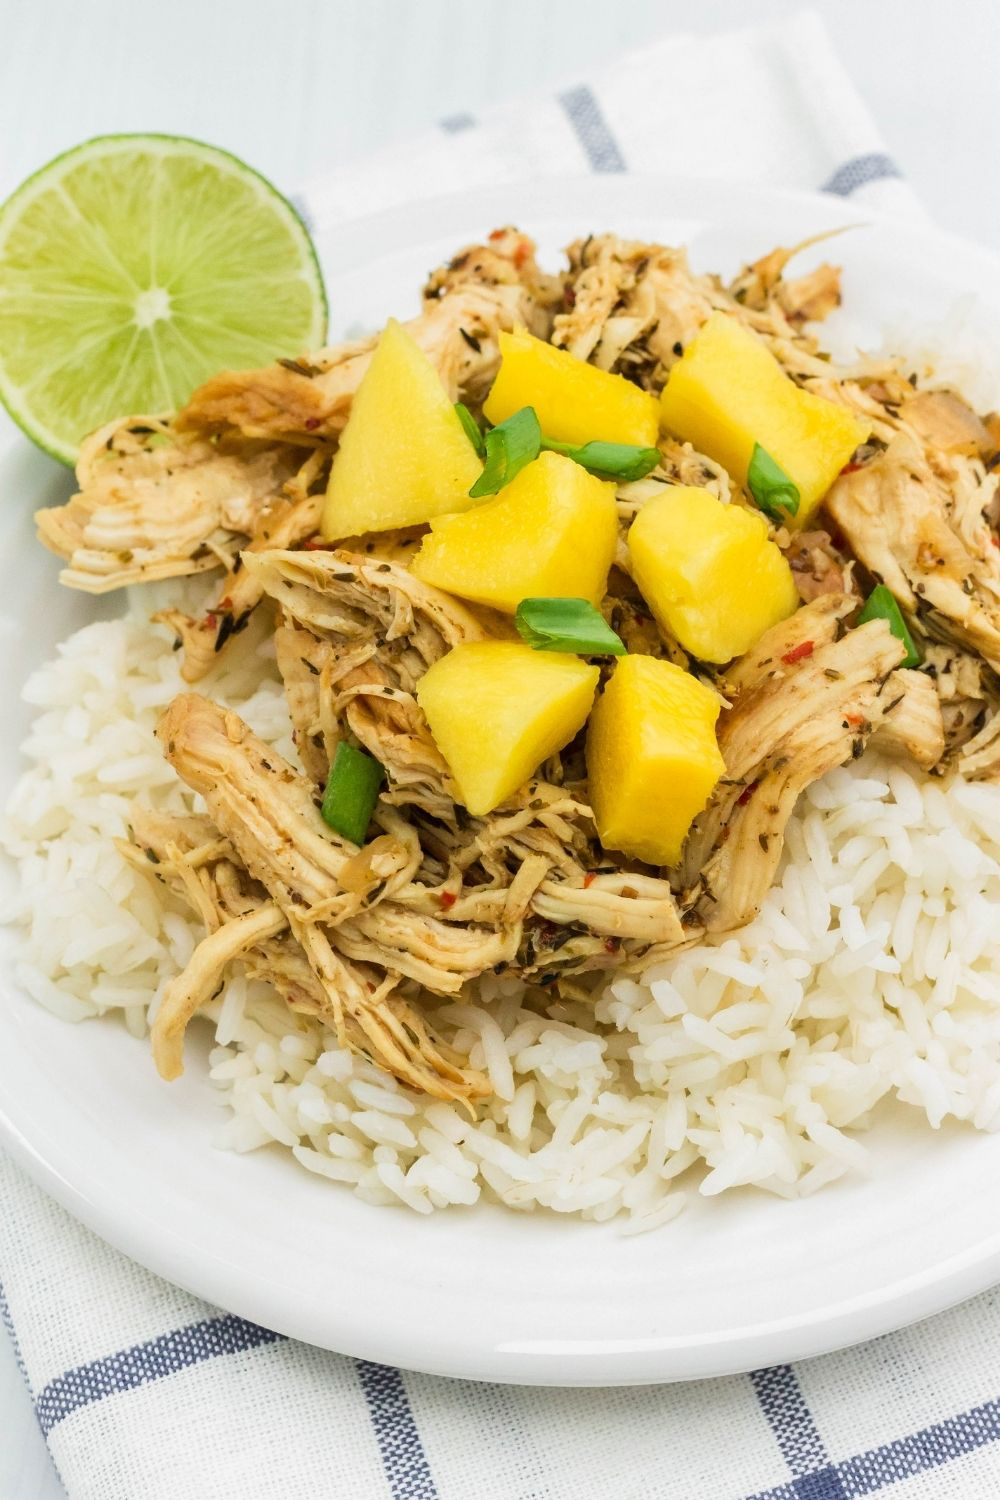 Instant Pot pulled jerk chicken over rice with mango